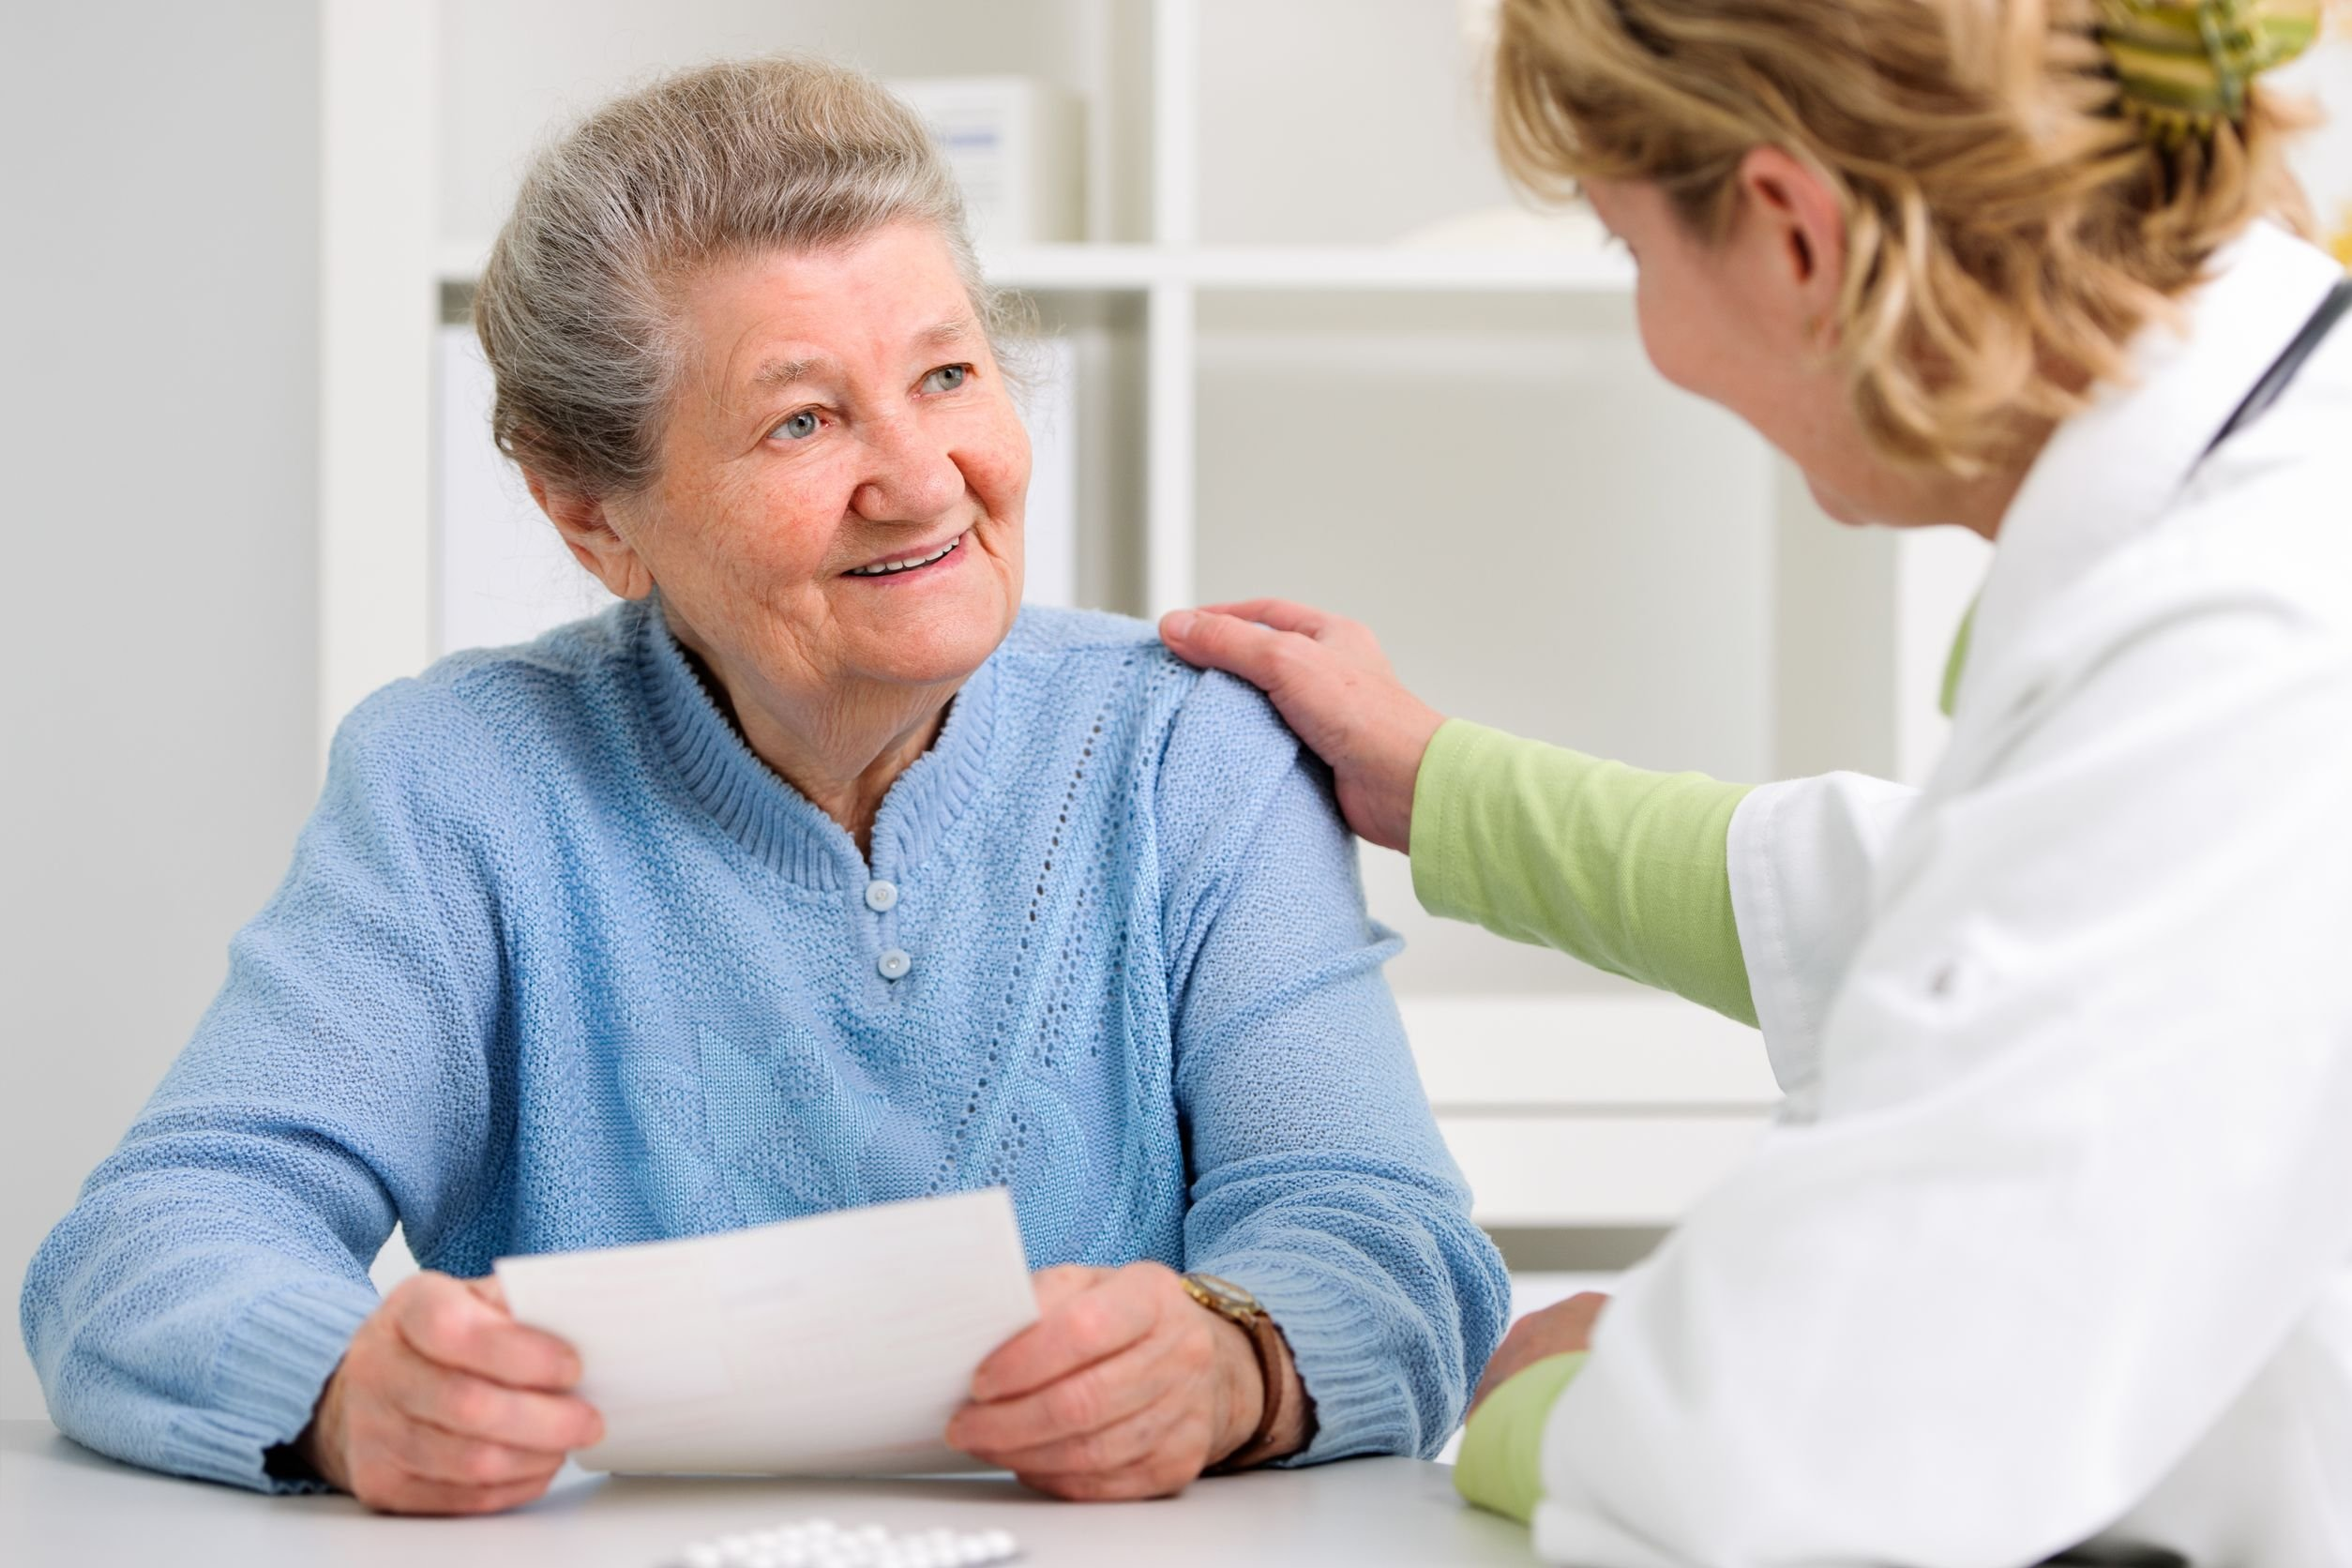 Older woman comforted by medical staff